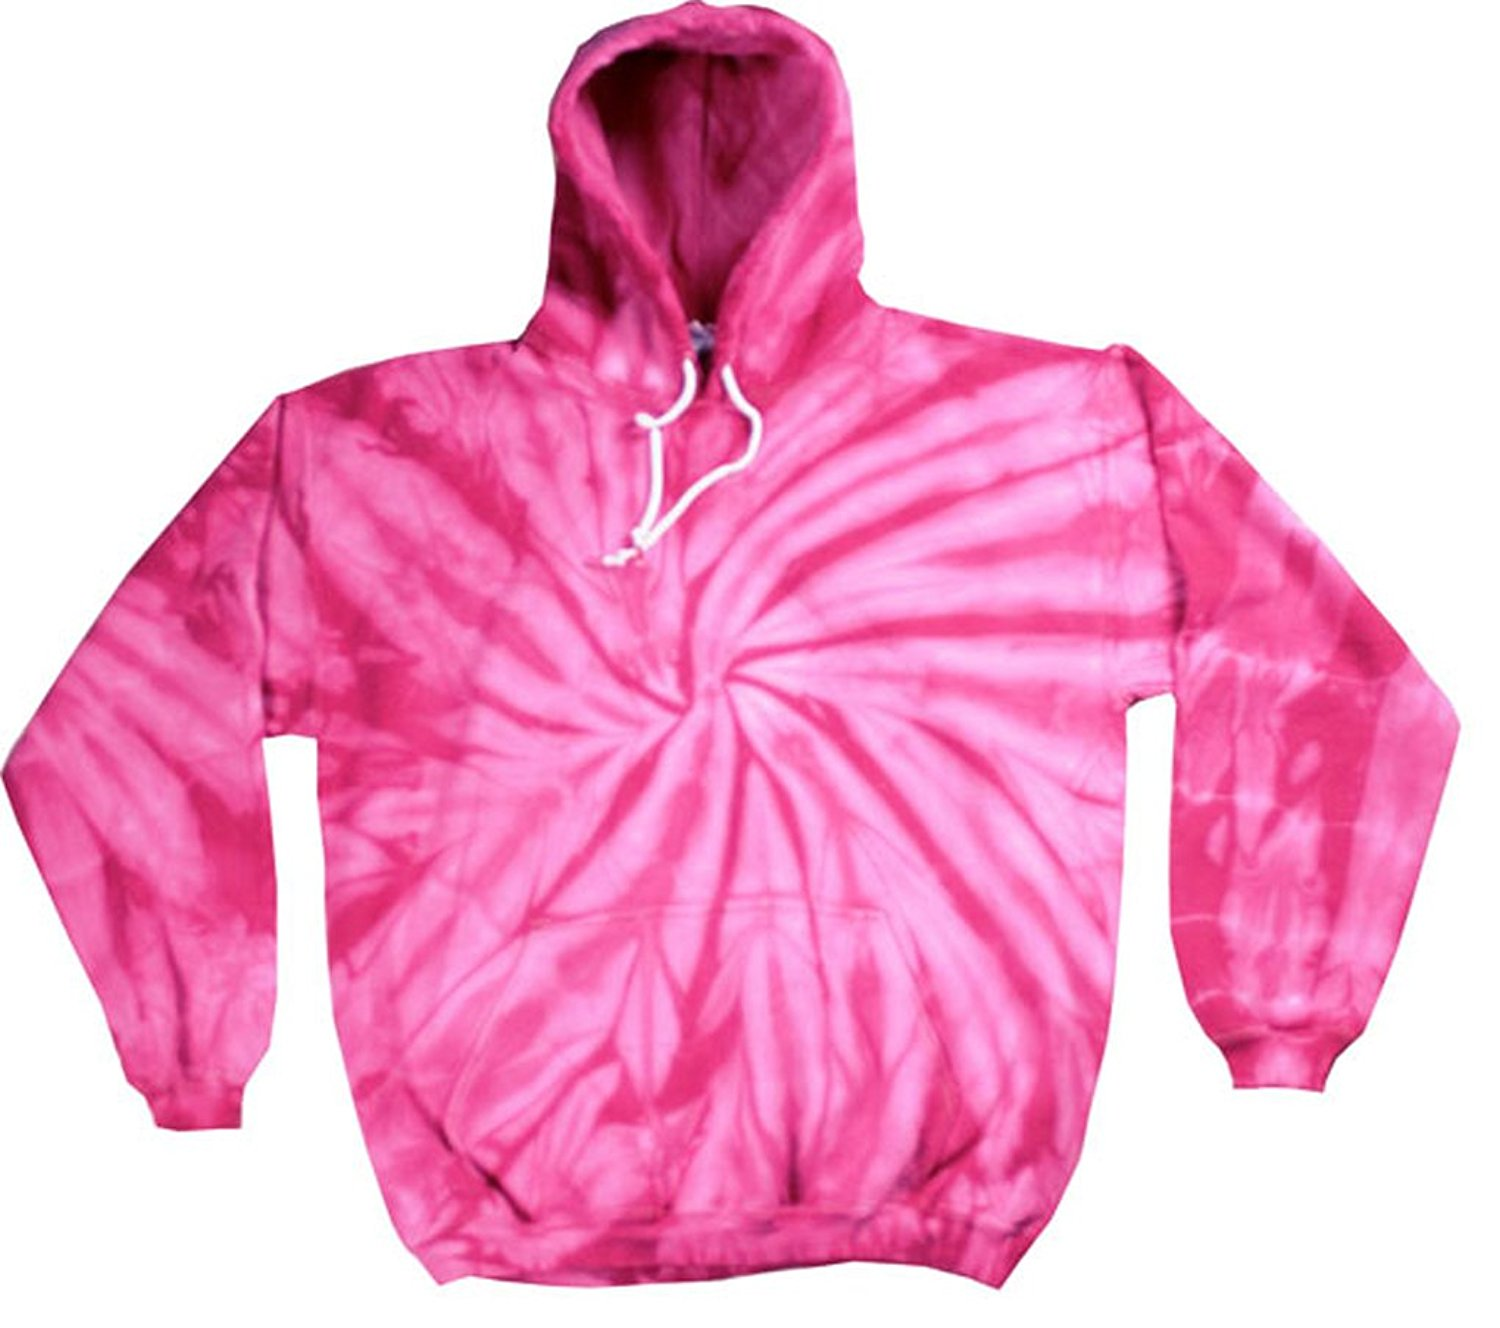 fa3e9225619 Get Quotations · Buy Cool Shirts Kids Tie Dye Pullover Spider Pink Hoodie